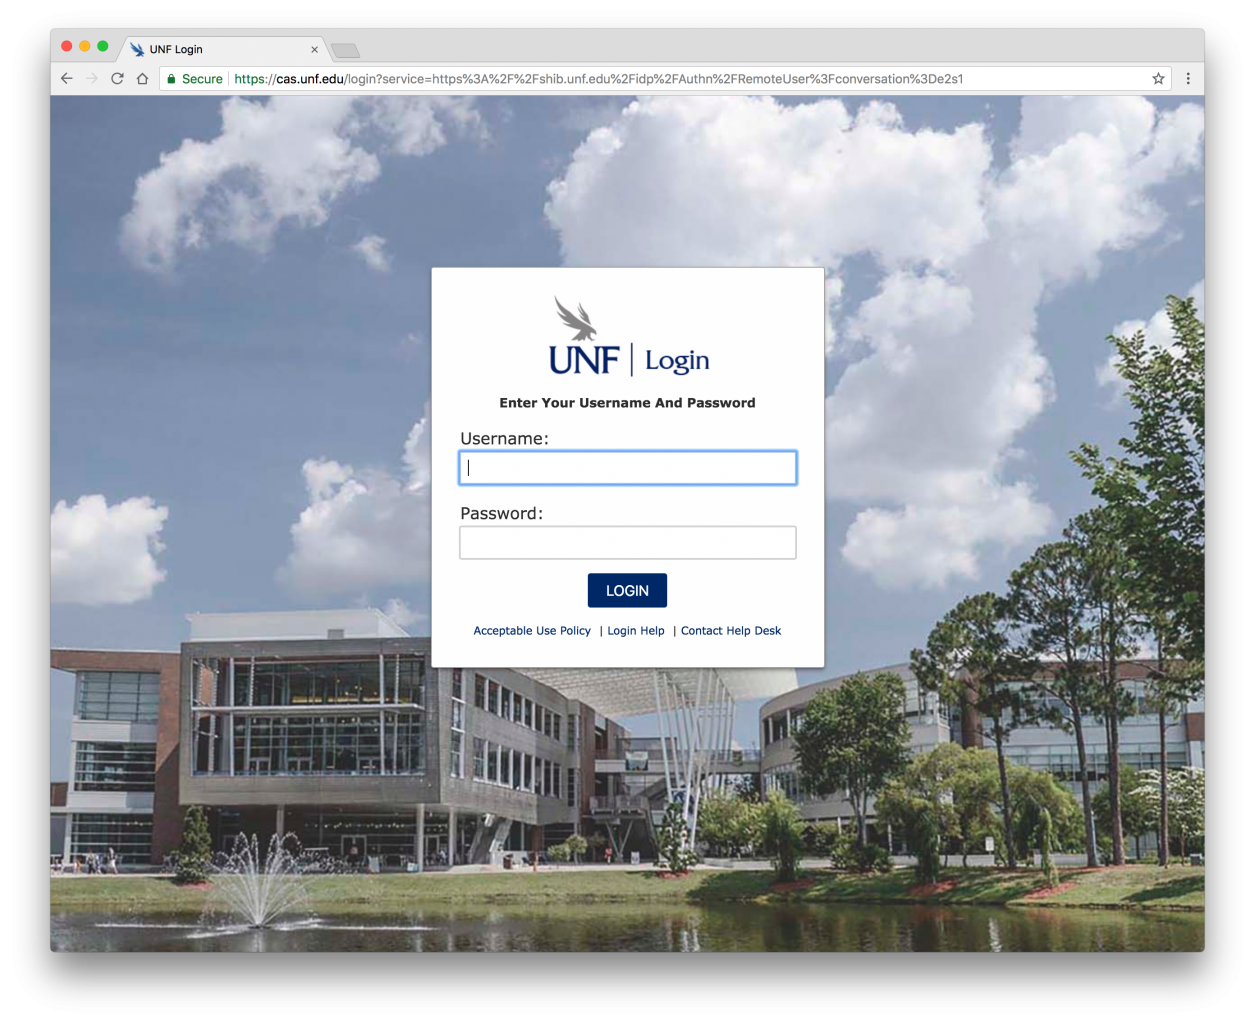 UNF Login Screen